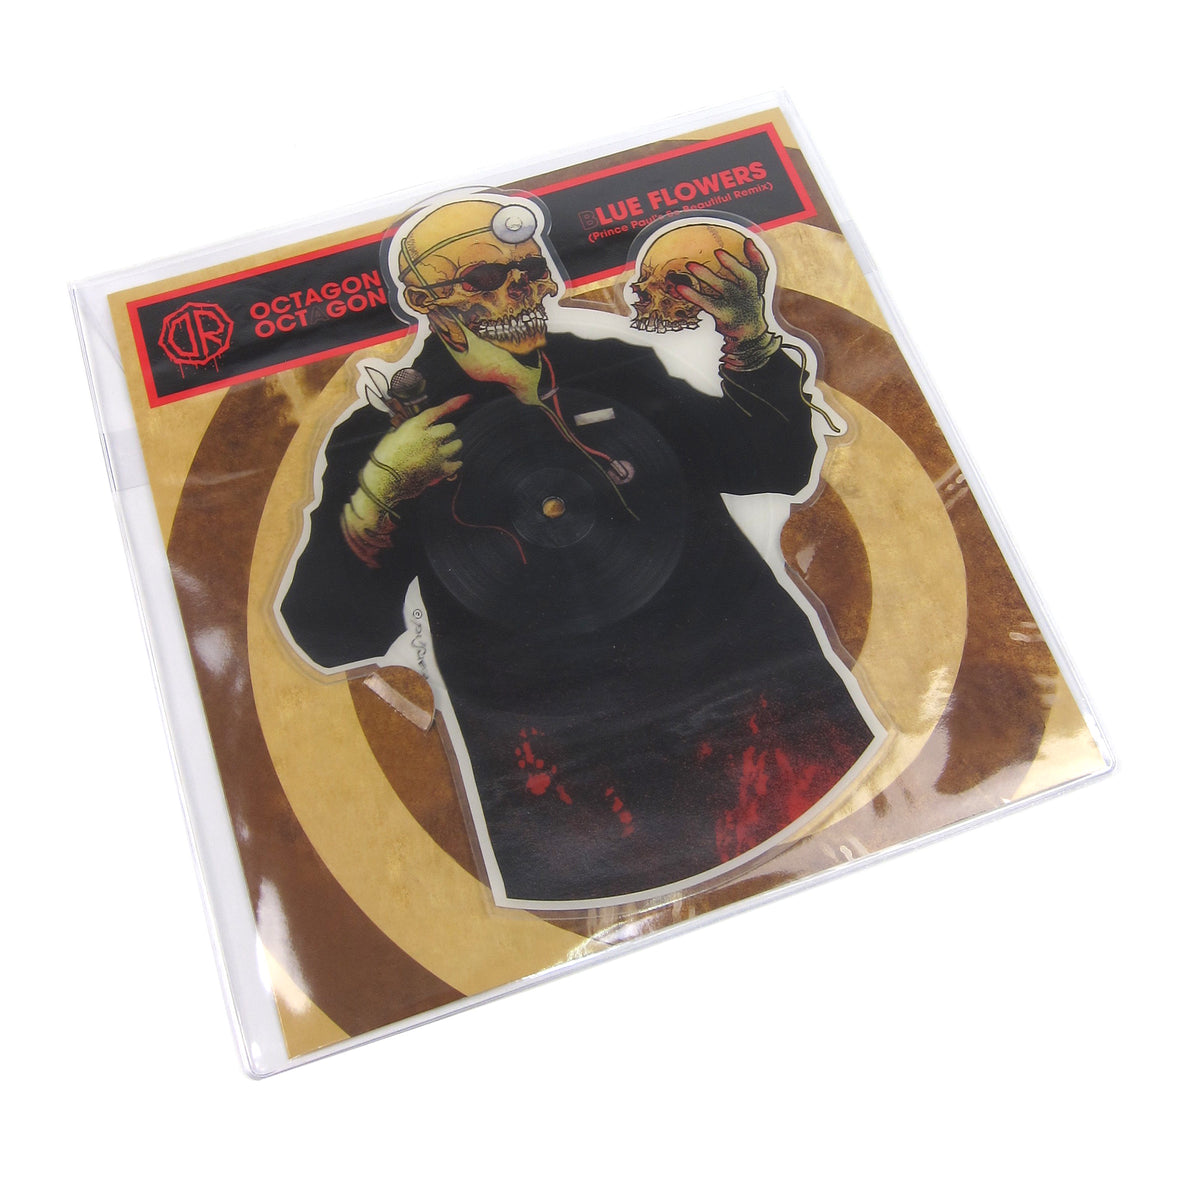 Dr. Octagon: Blue Flowers (Pic Disc) Vinyl 12""